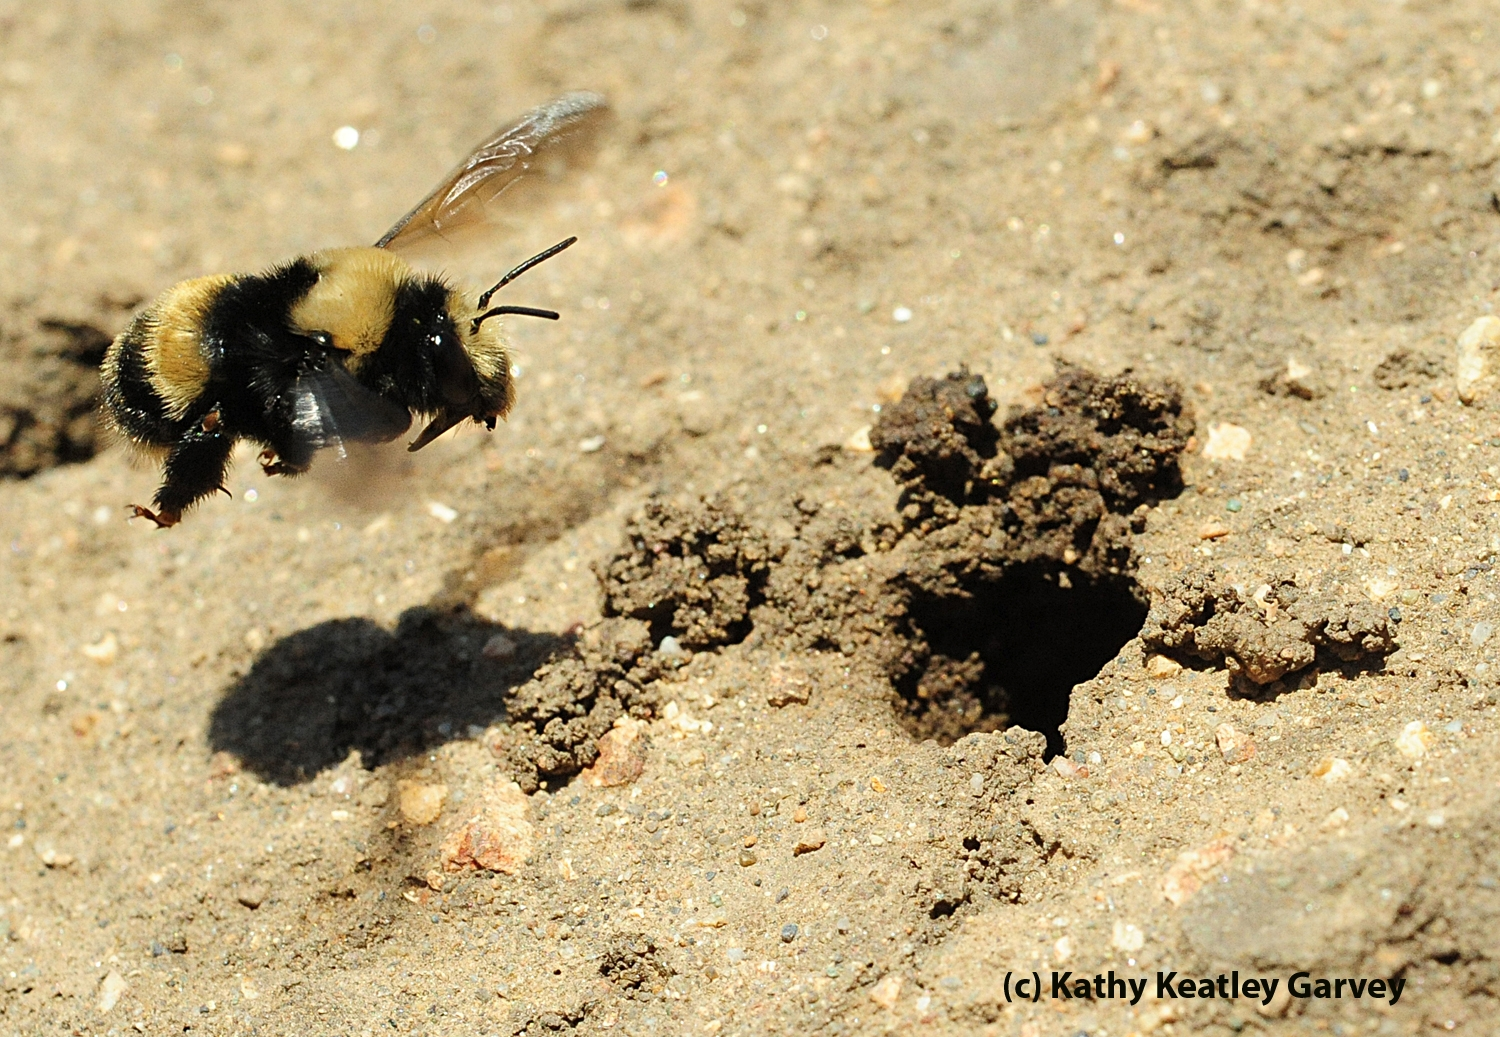 Female Digger Bee Anthophora Bomboides Stanfordiana Heads For Her Nest Photo By Kathy Keatley Garvey